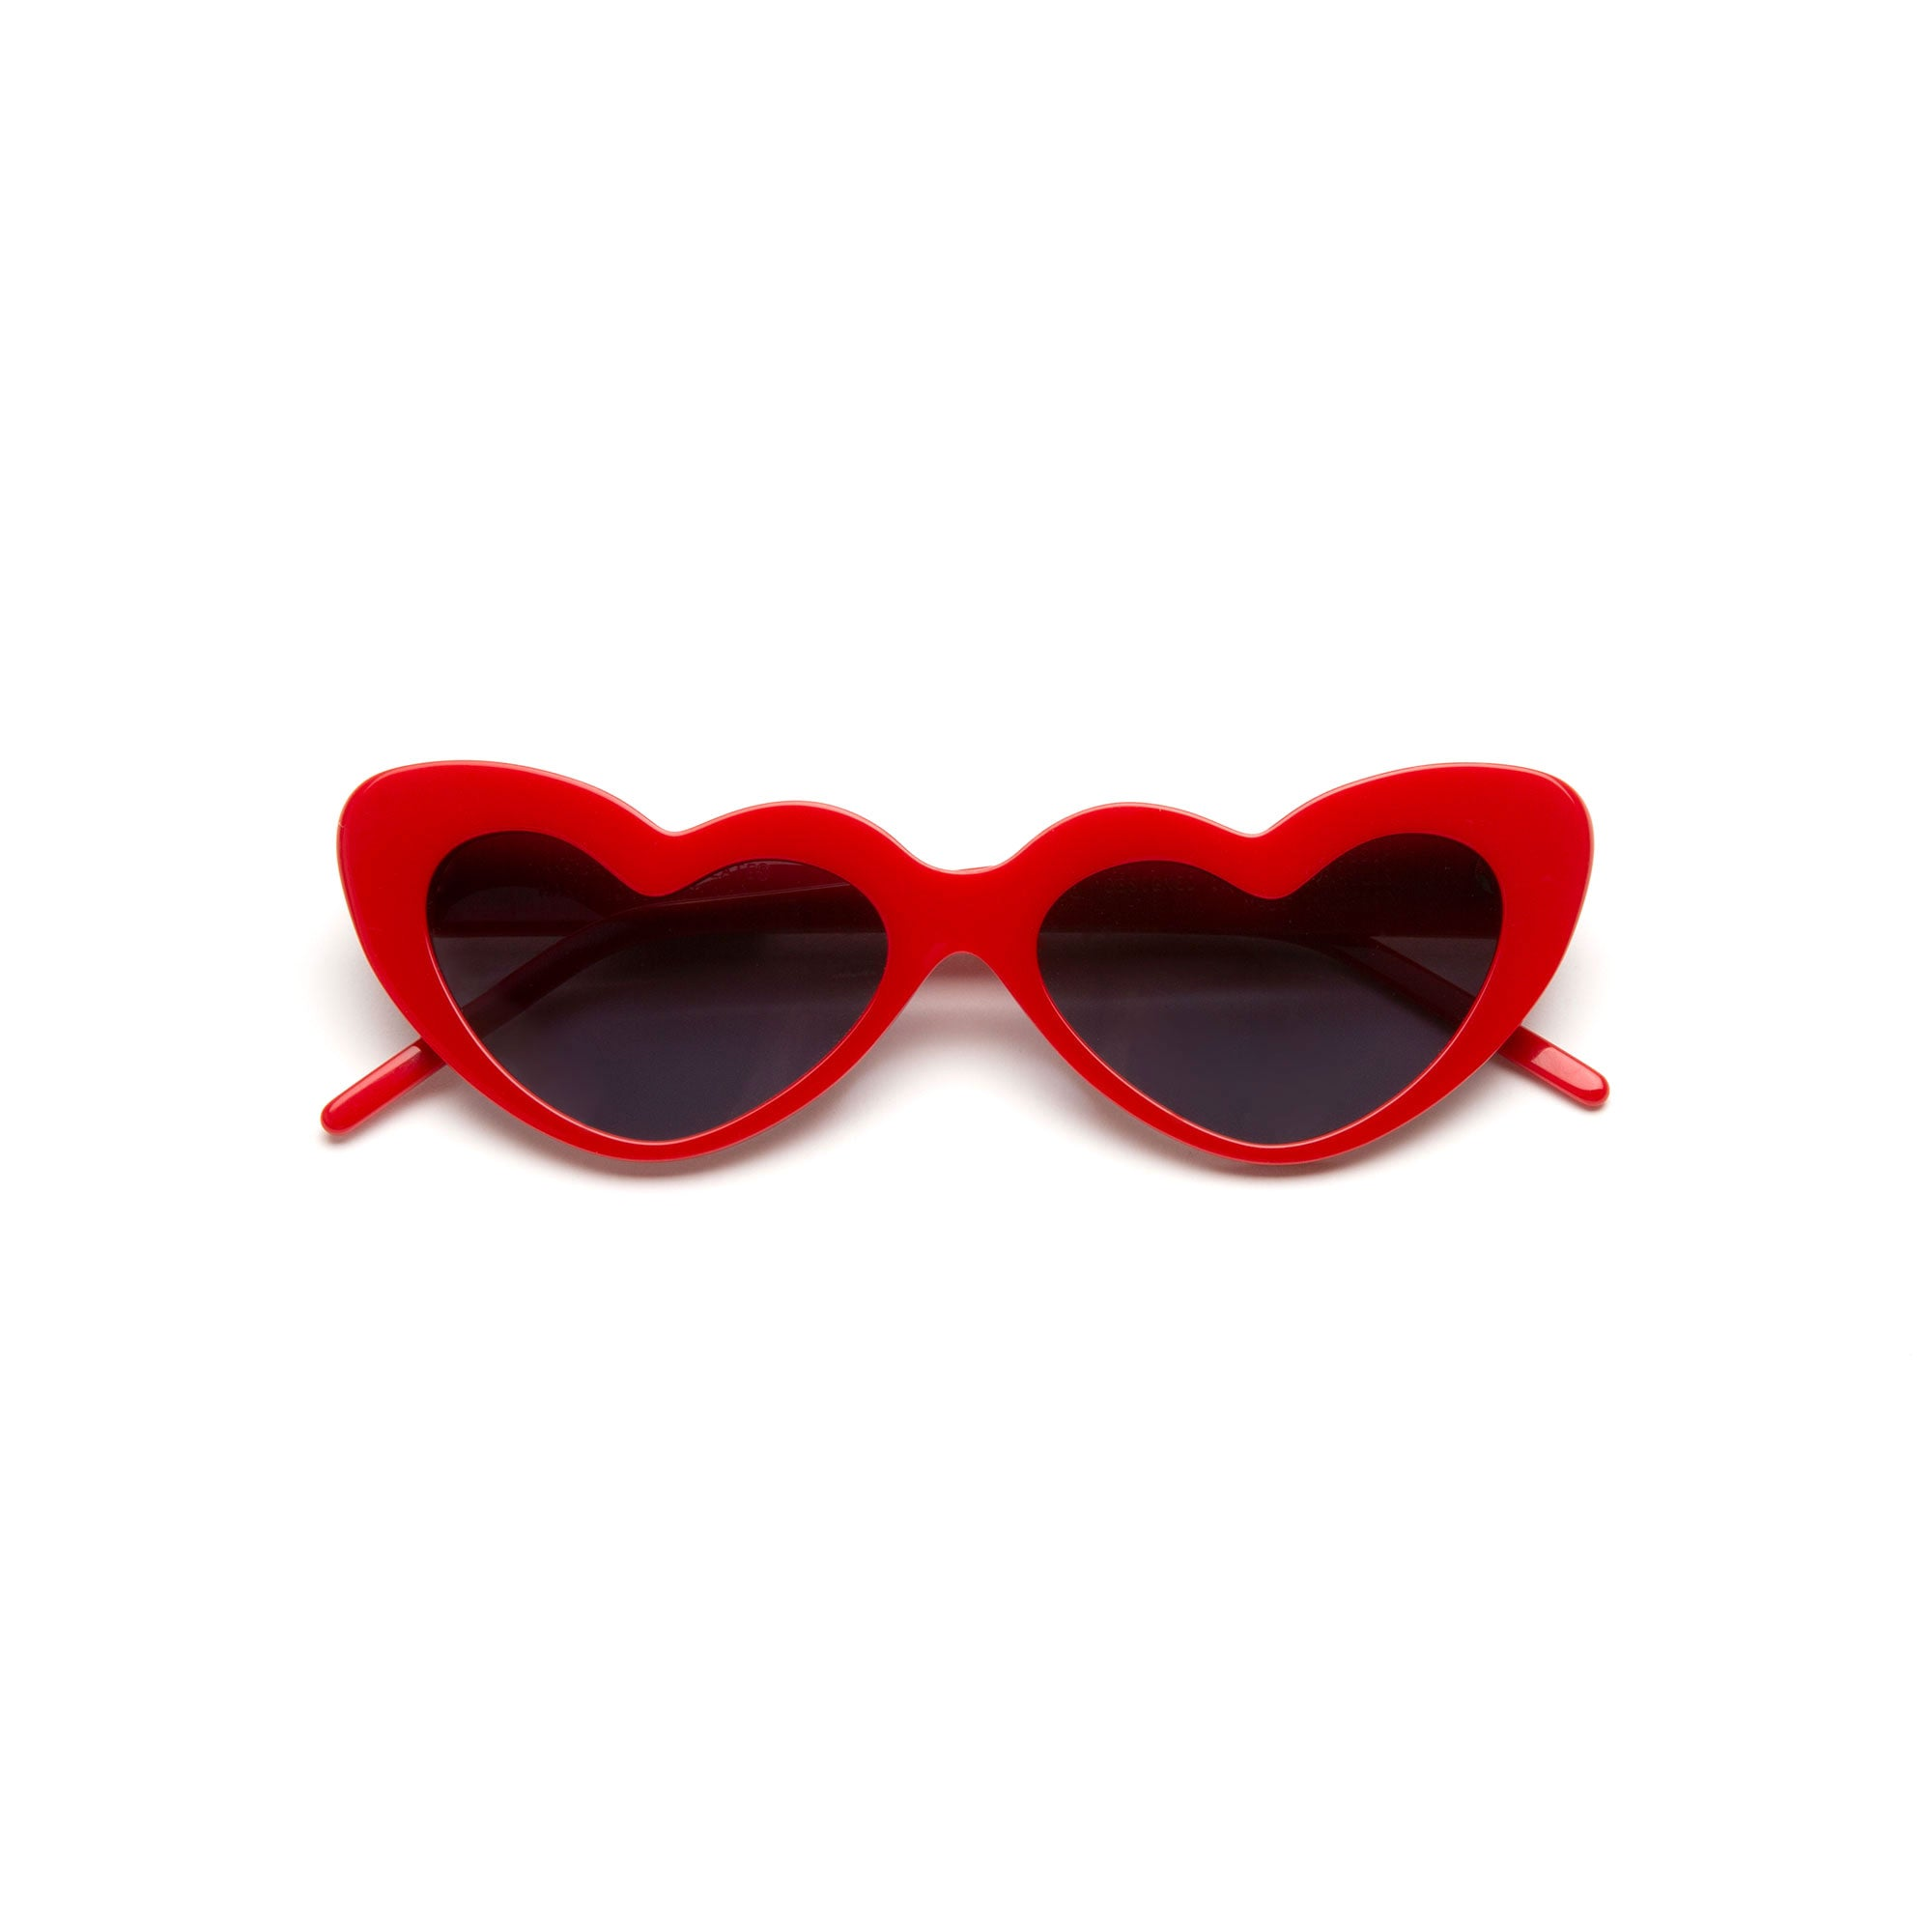 AKILA x CIRCULATE Gossip Heart Shaped Sunglasses